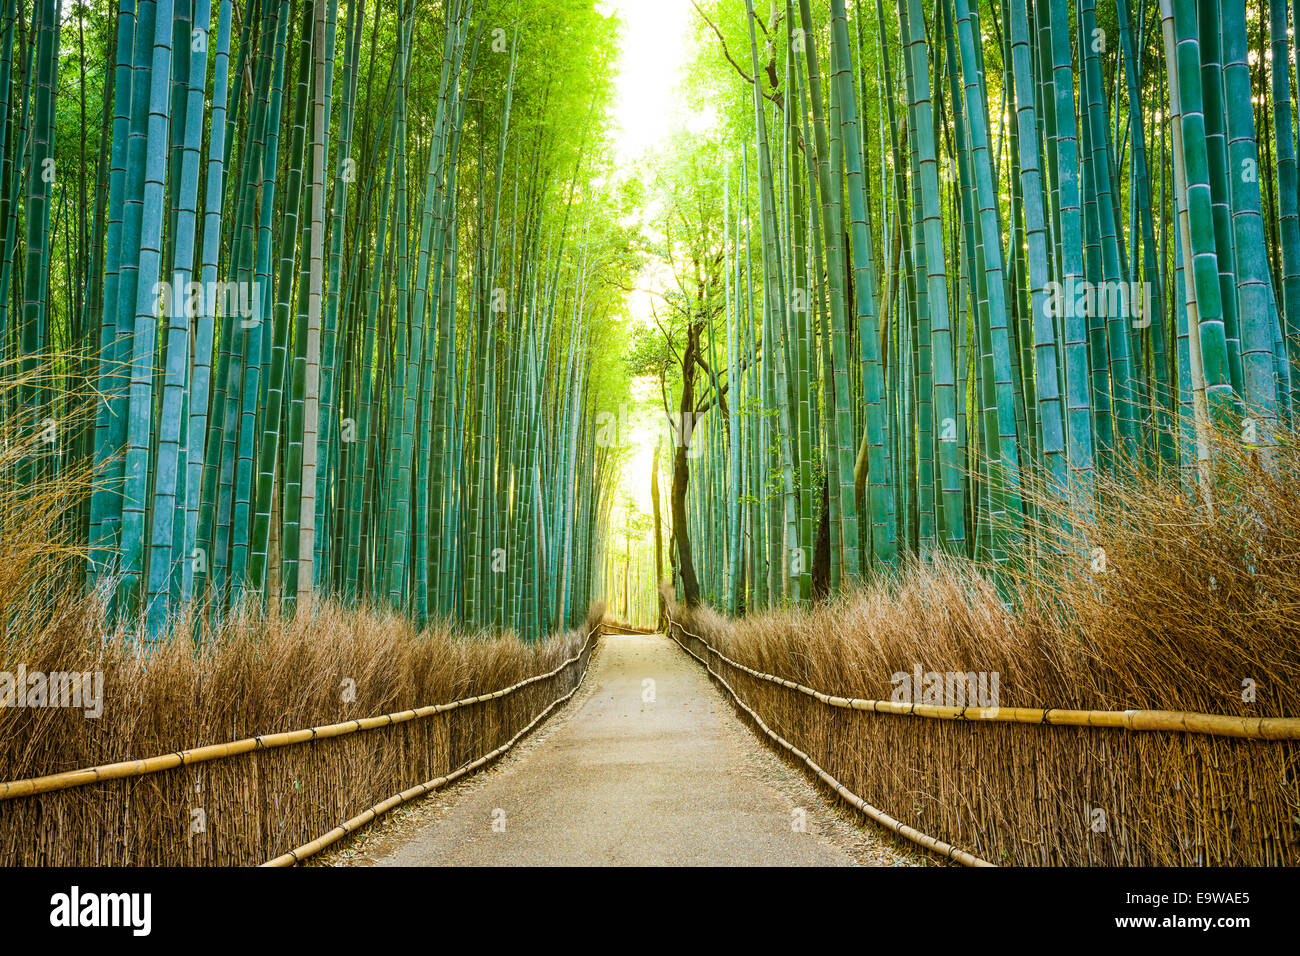 Kyoto, Japan bamboo forest. - Stock Image